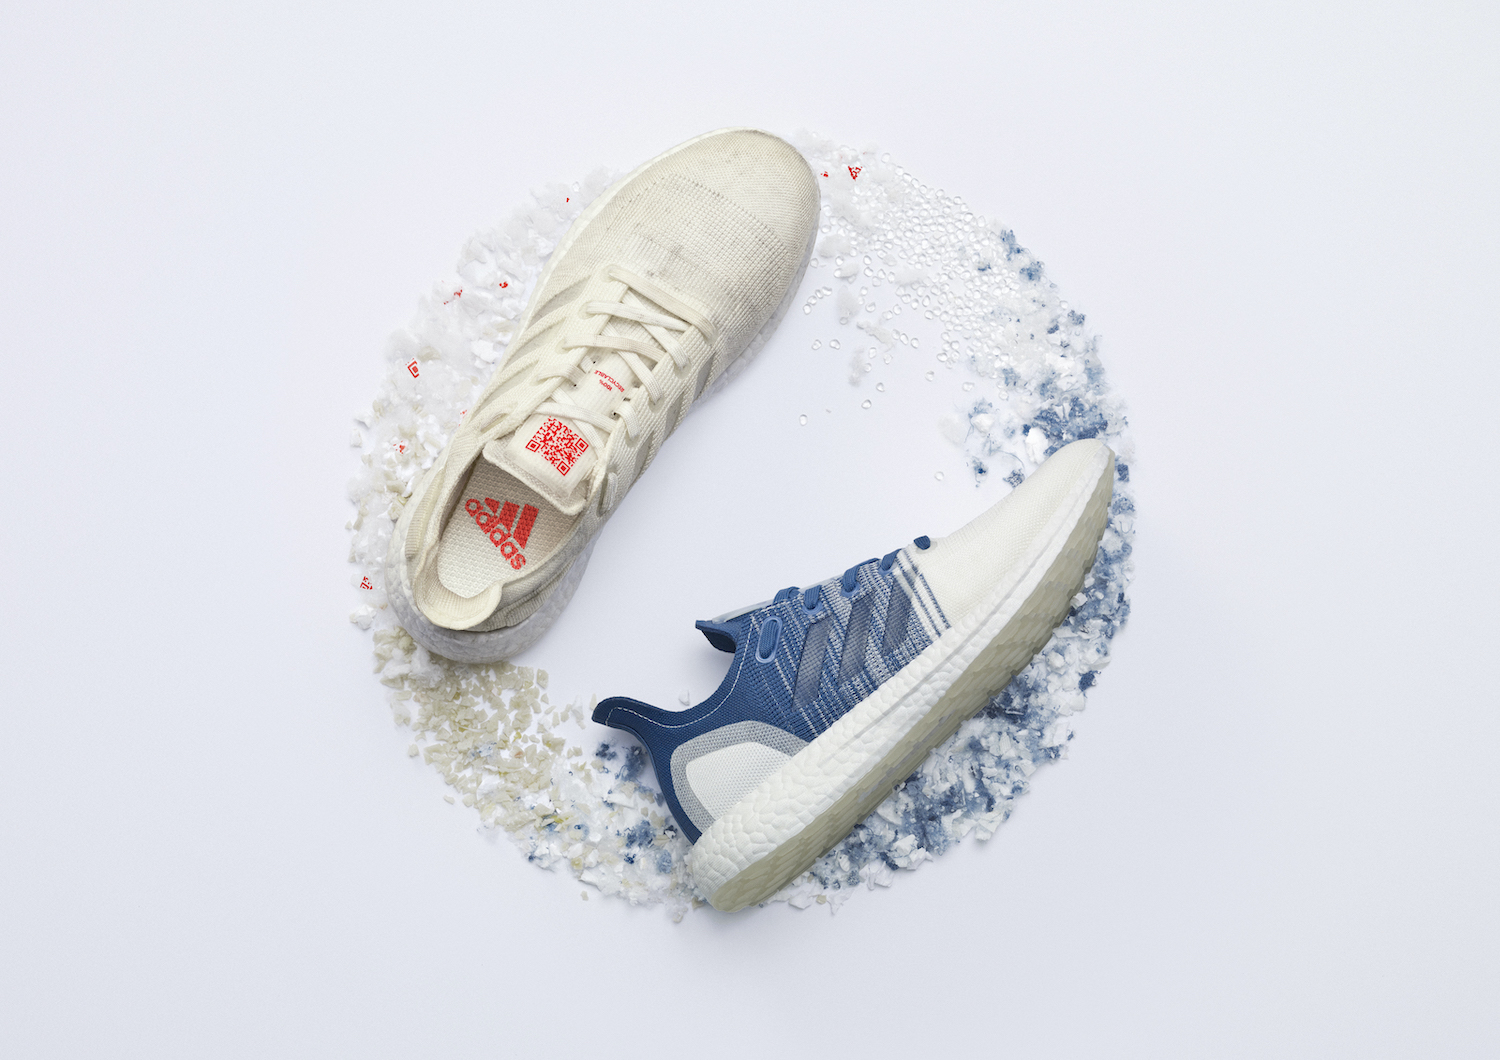 Adidas recyclable circular shoe sustainable materials